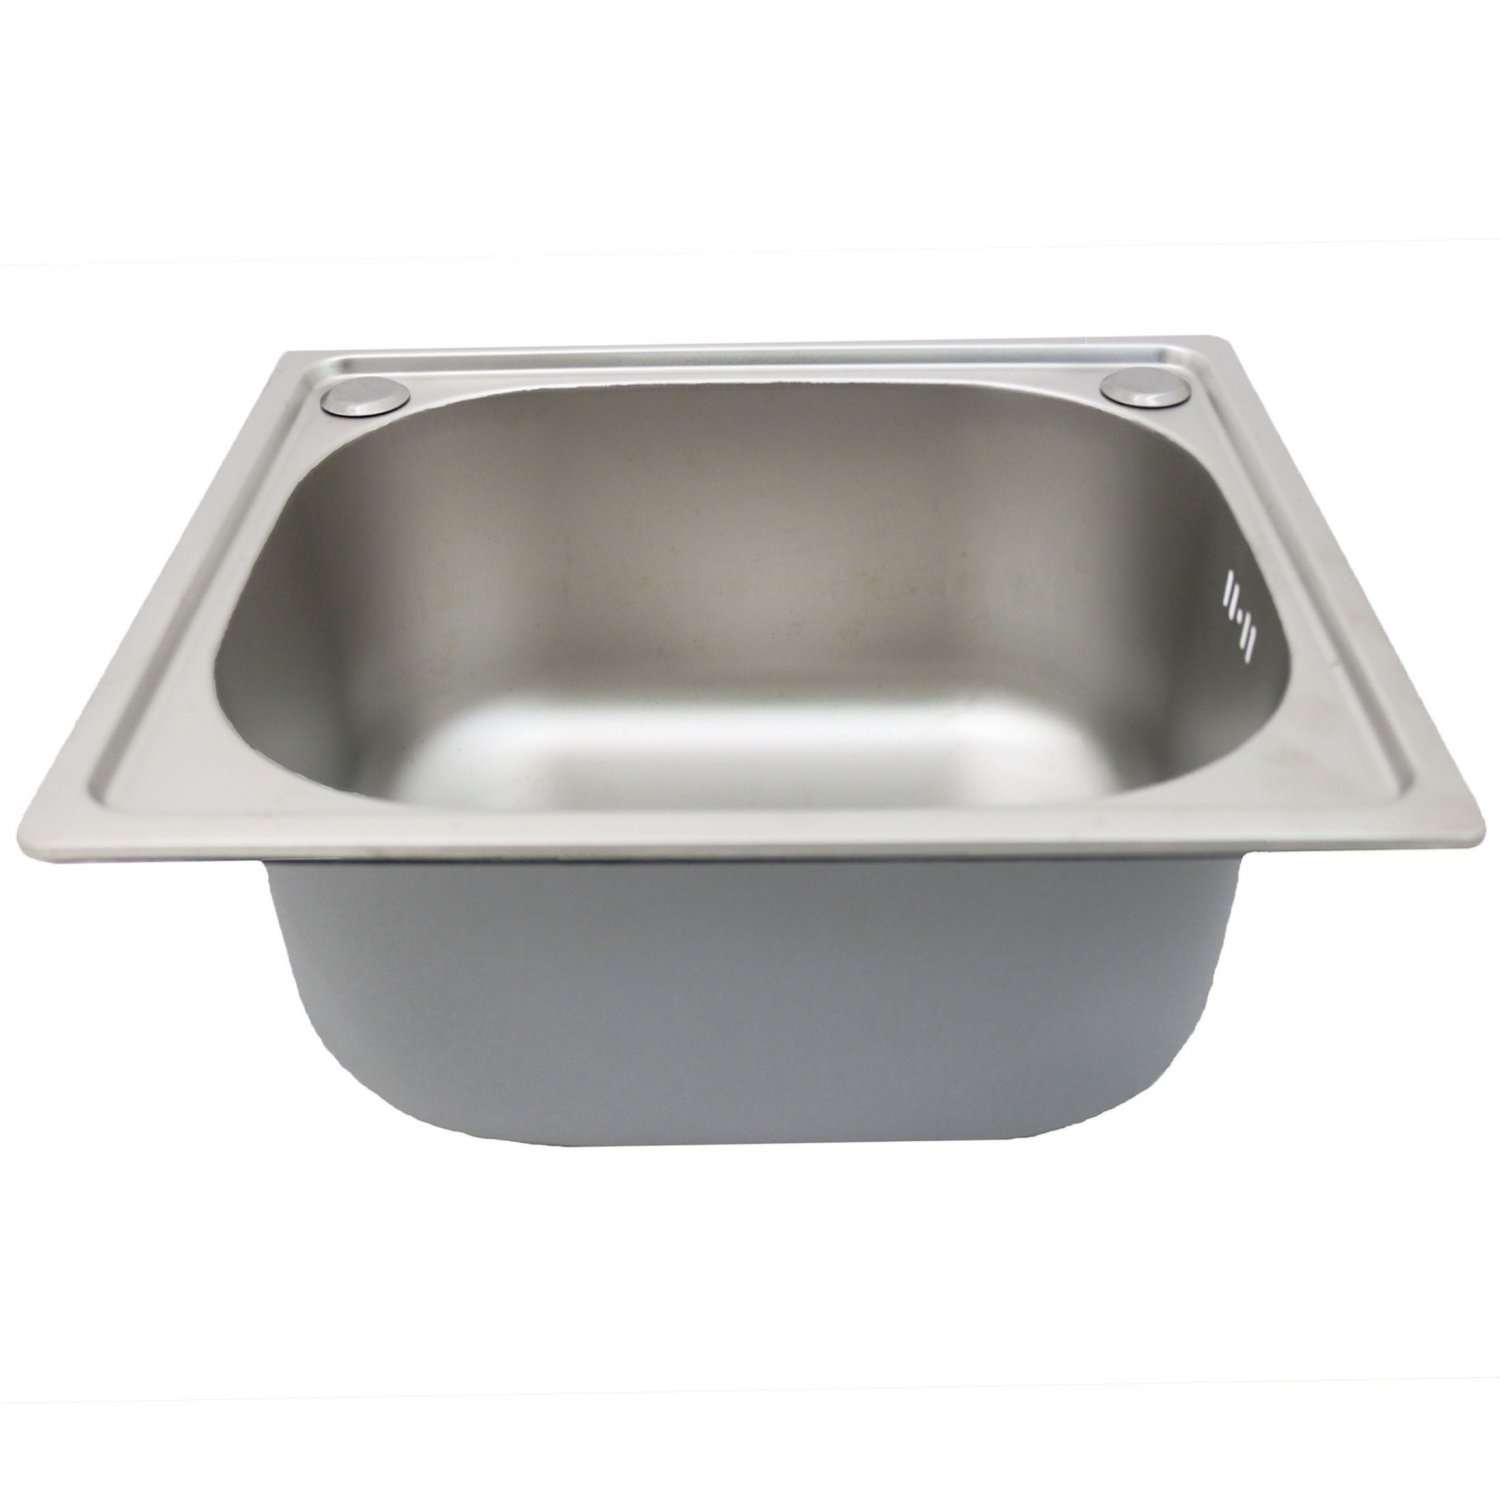 Top Mount Sink Kitchen: Brushed Stainless Steel Top Mount Kitchen Bowl Sink W